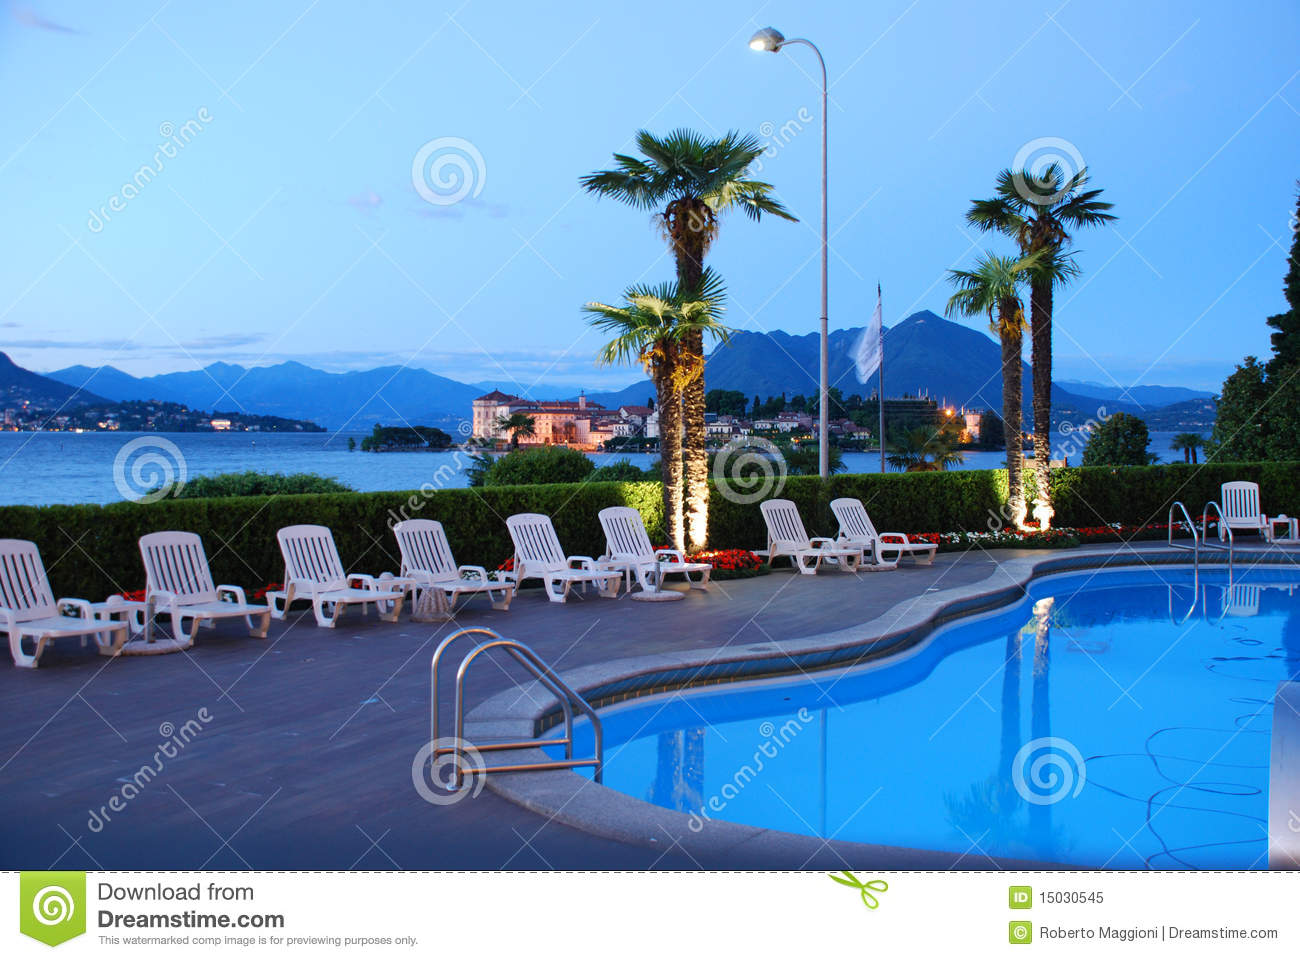 Luxury Hotel Lago Maggiore Italy Swimming Pool Royalty Free Stock Photo Image 15030545